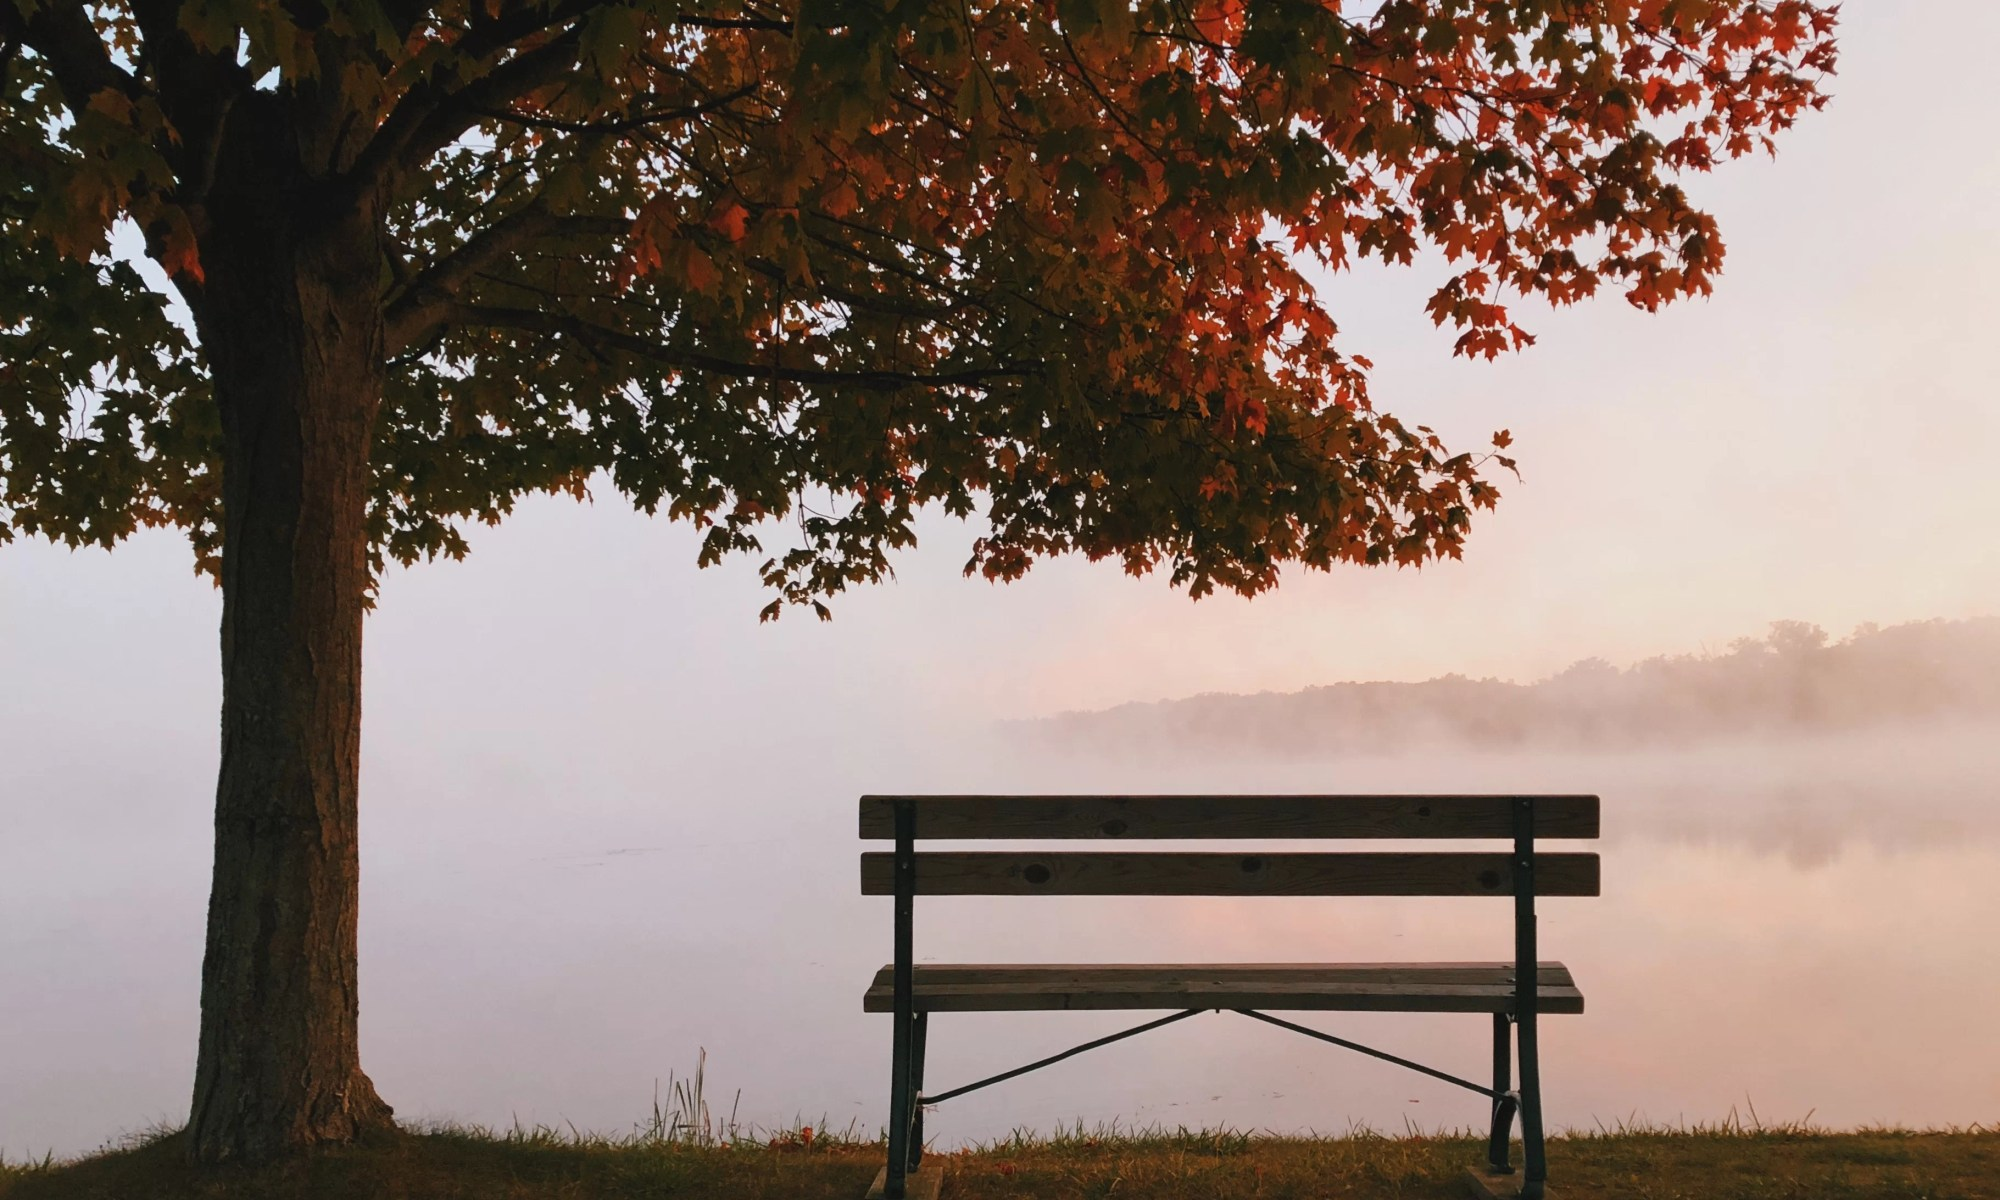 A bench by a tree in autumn